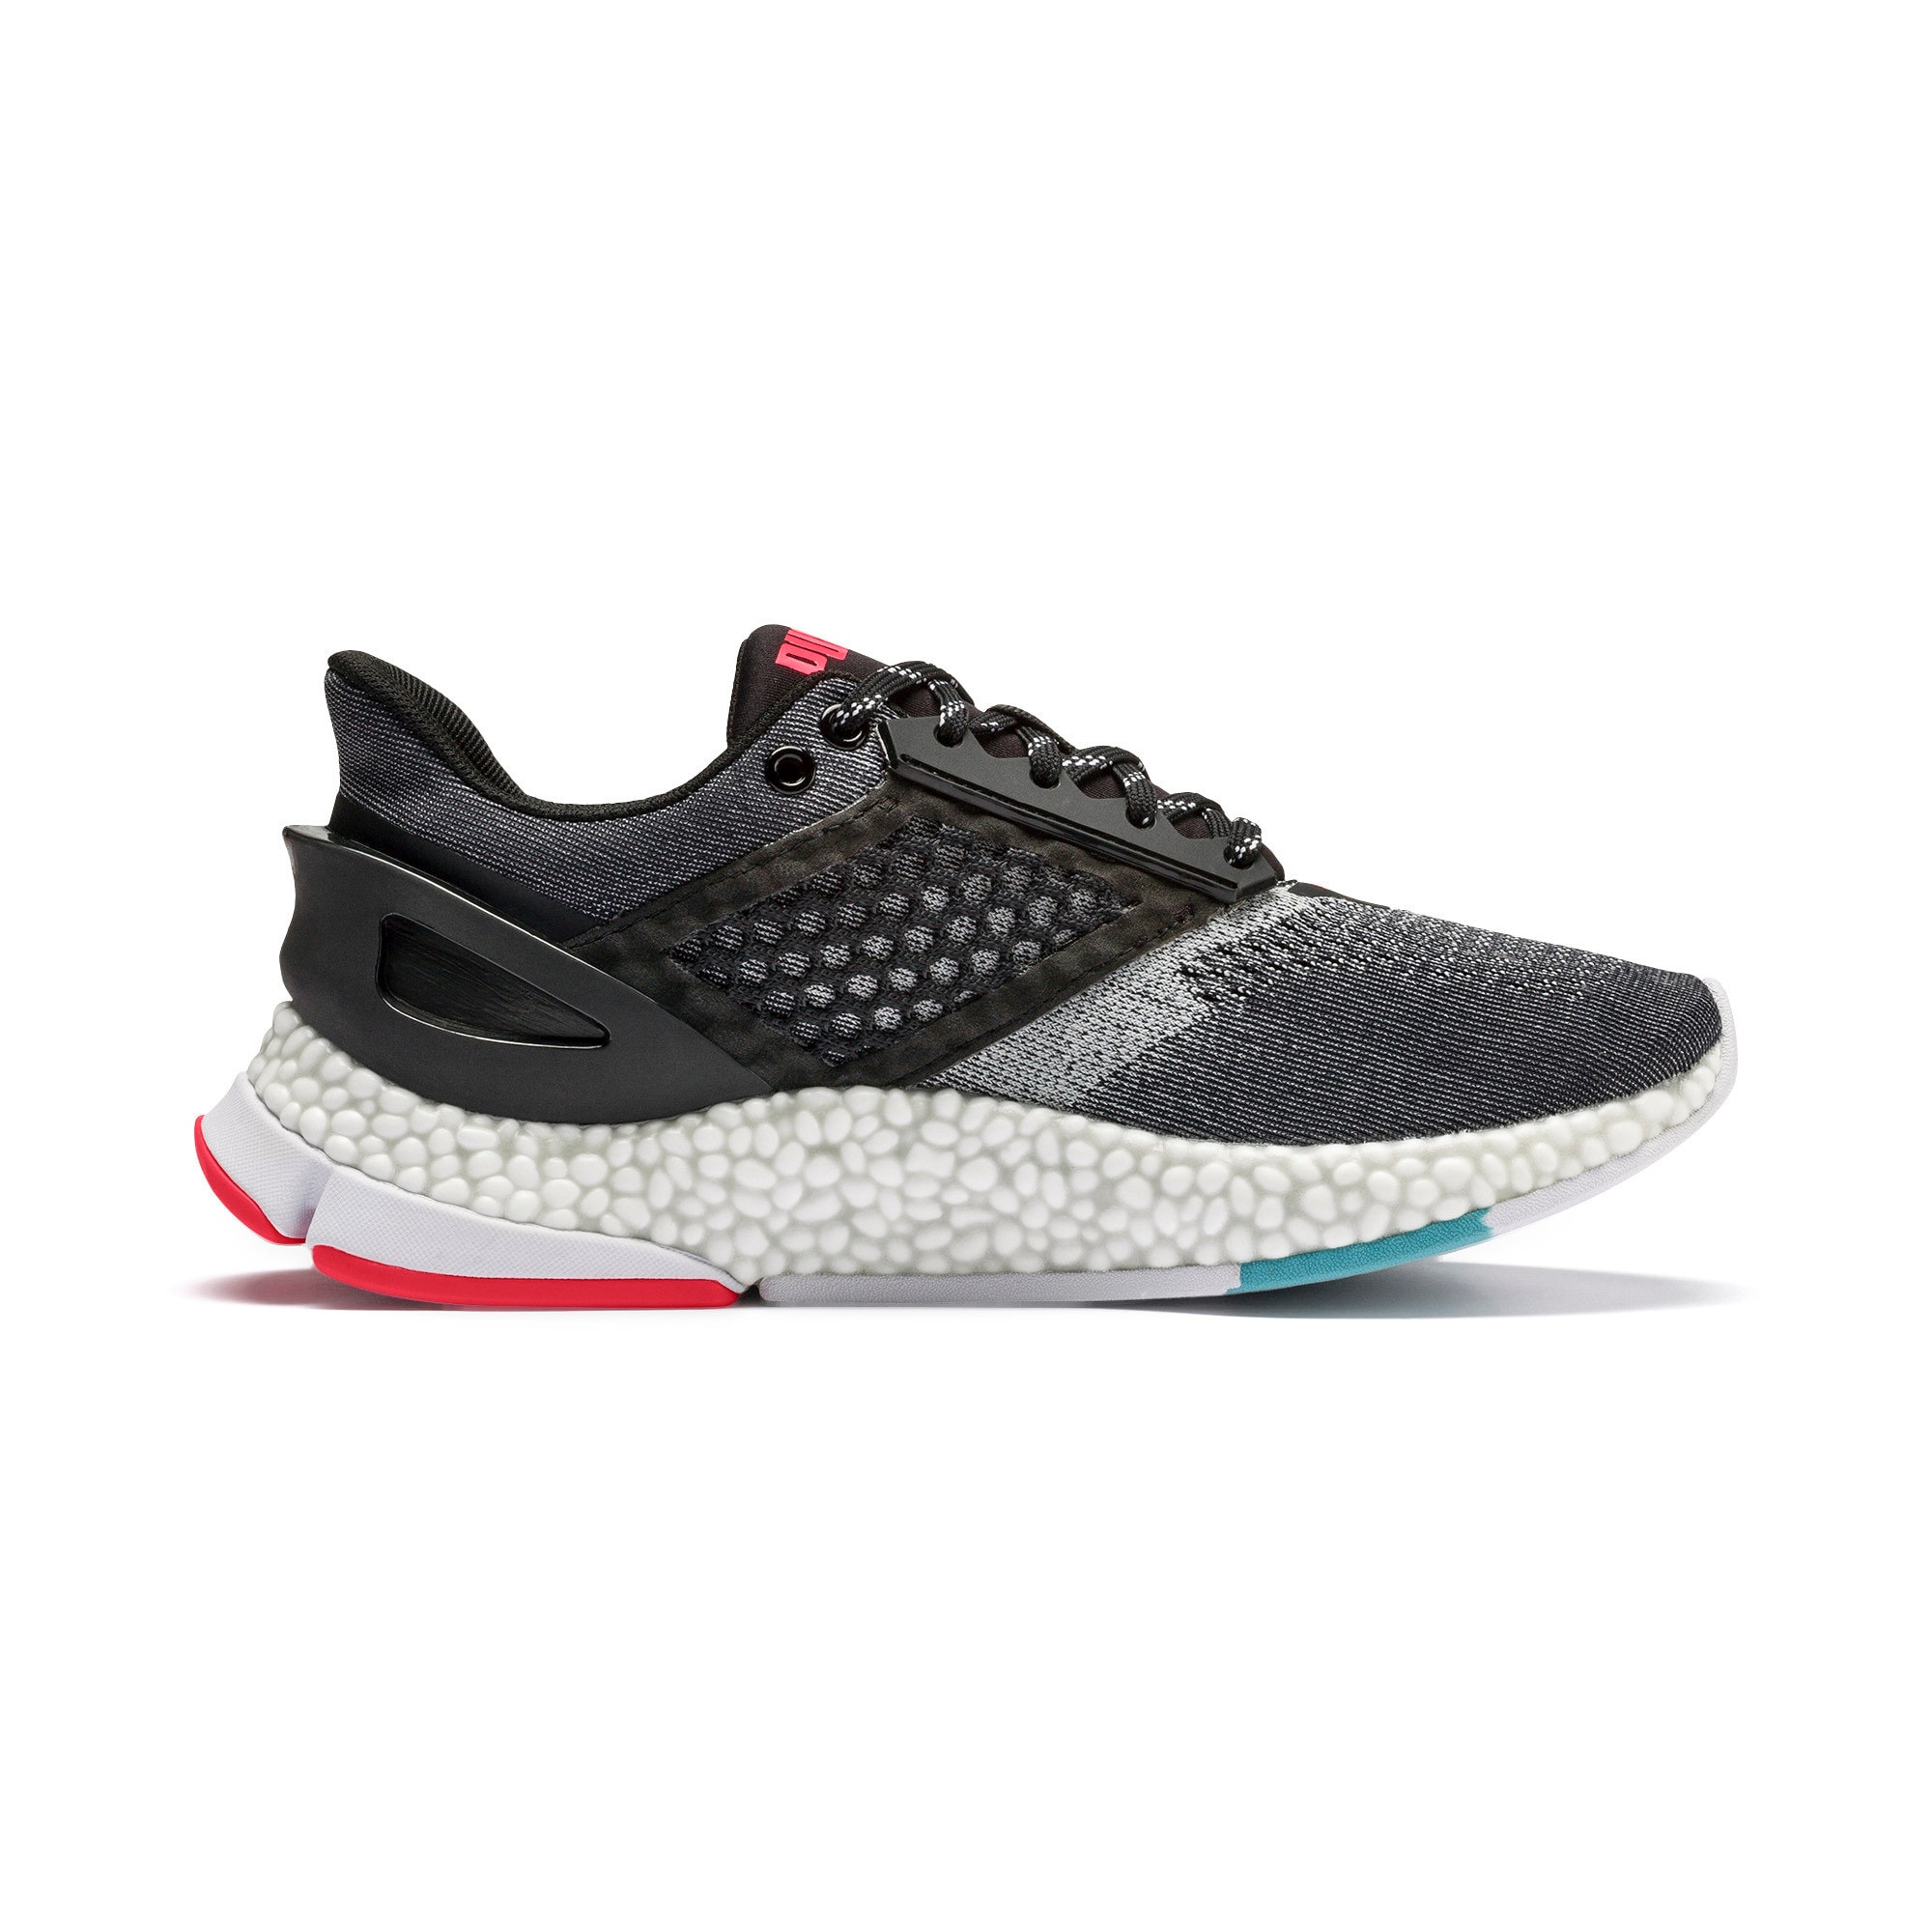 Thumbnail 8 of HYBRID NETFIT Astro Women's Running Shoes, Puma Black-Pink Alert, medium